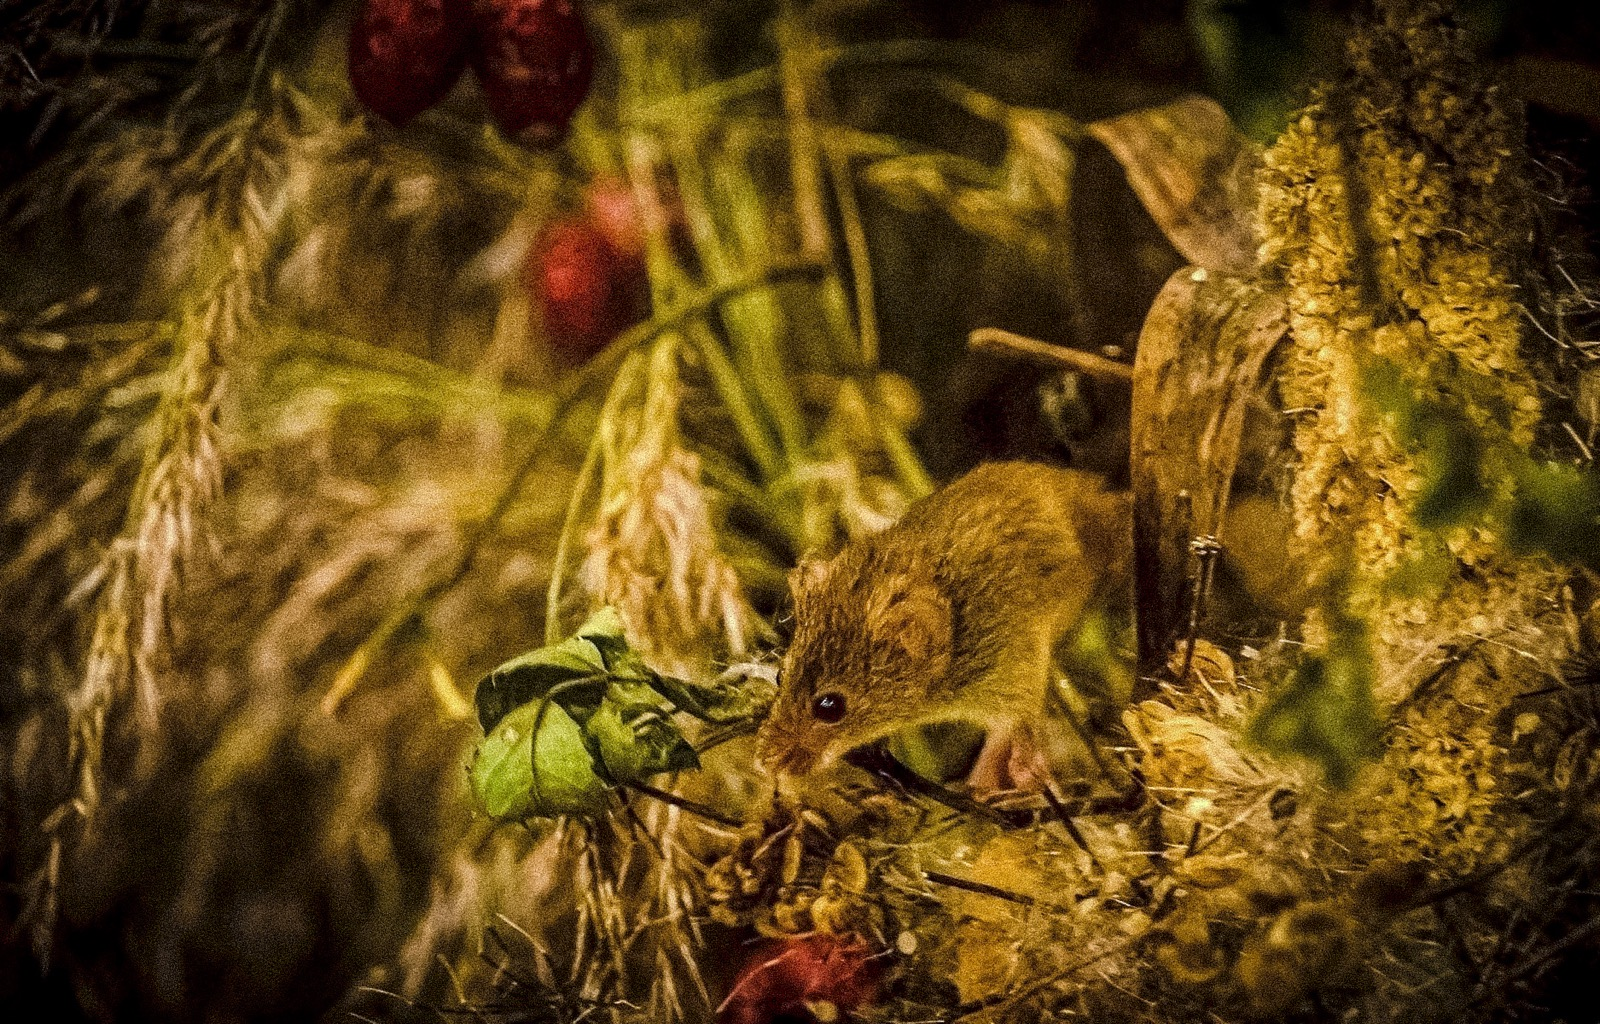 Harvest mouse life span is 18 months